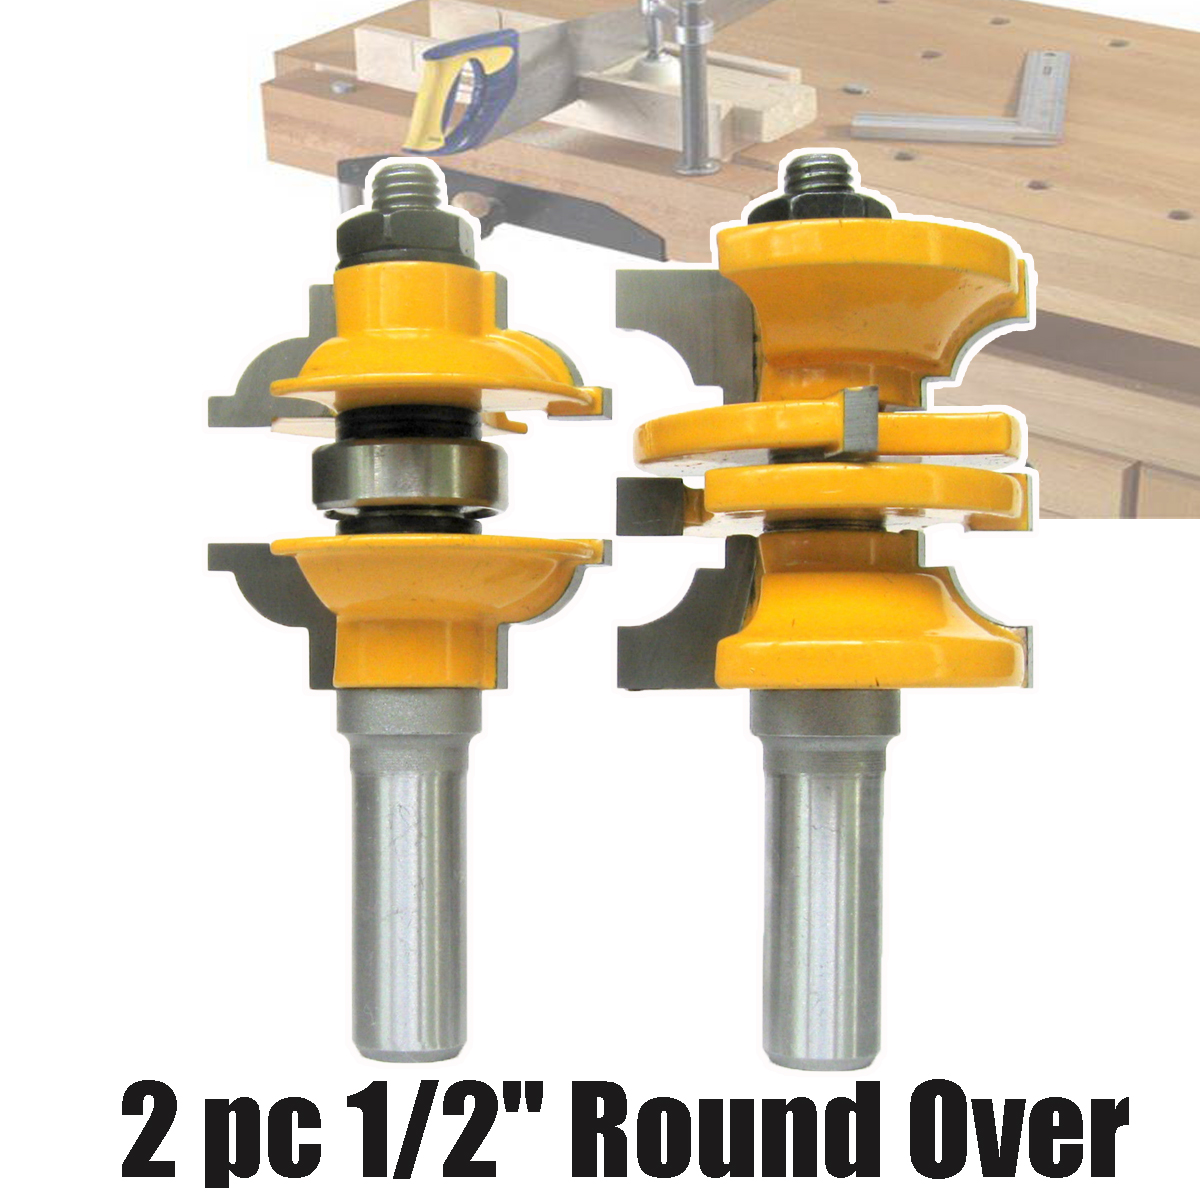 цена на 2Pc Lock Miter Router Bit 1/2 Inch Shank Woodworking Tenon Milling Cutter Tool Drilling Milling For Wood Carbide Alloy